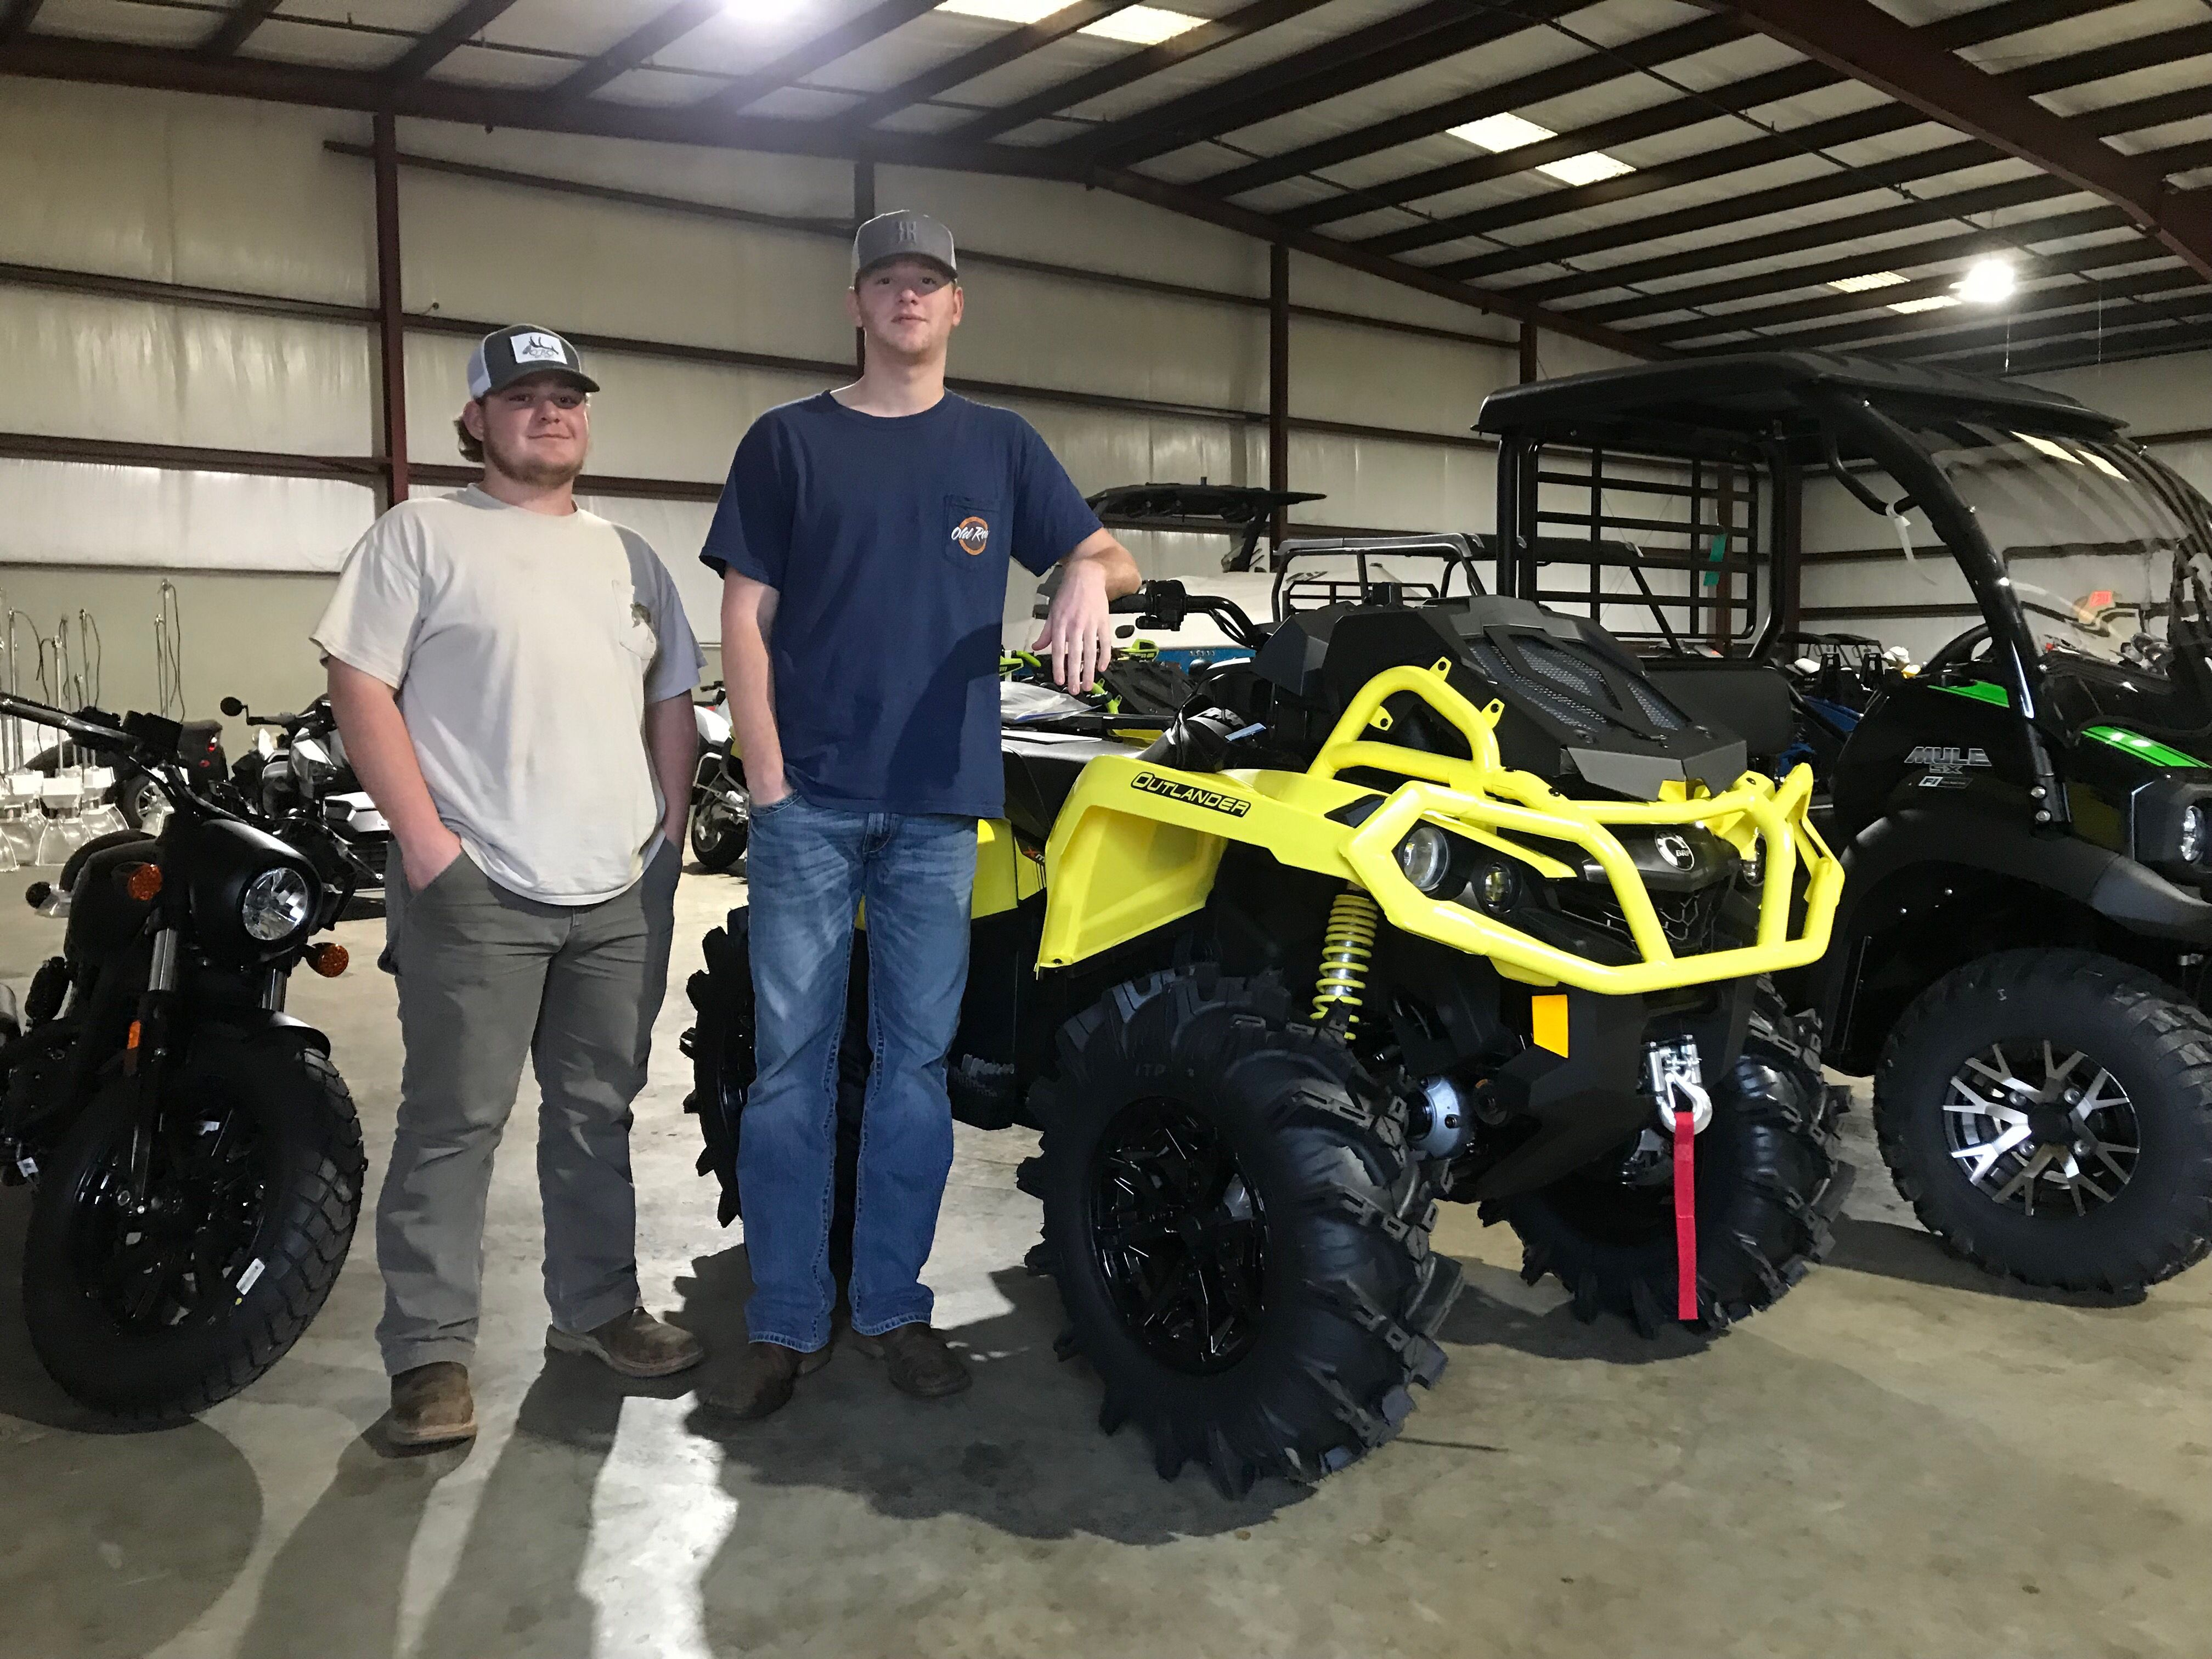 Congratulations to Reed Hunt and Trent Sargent from Mobile